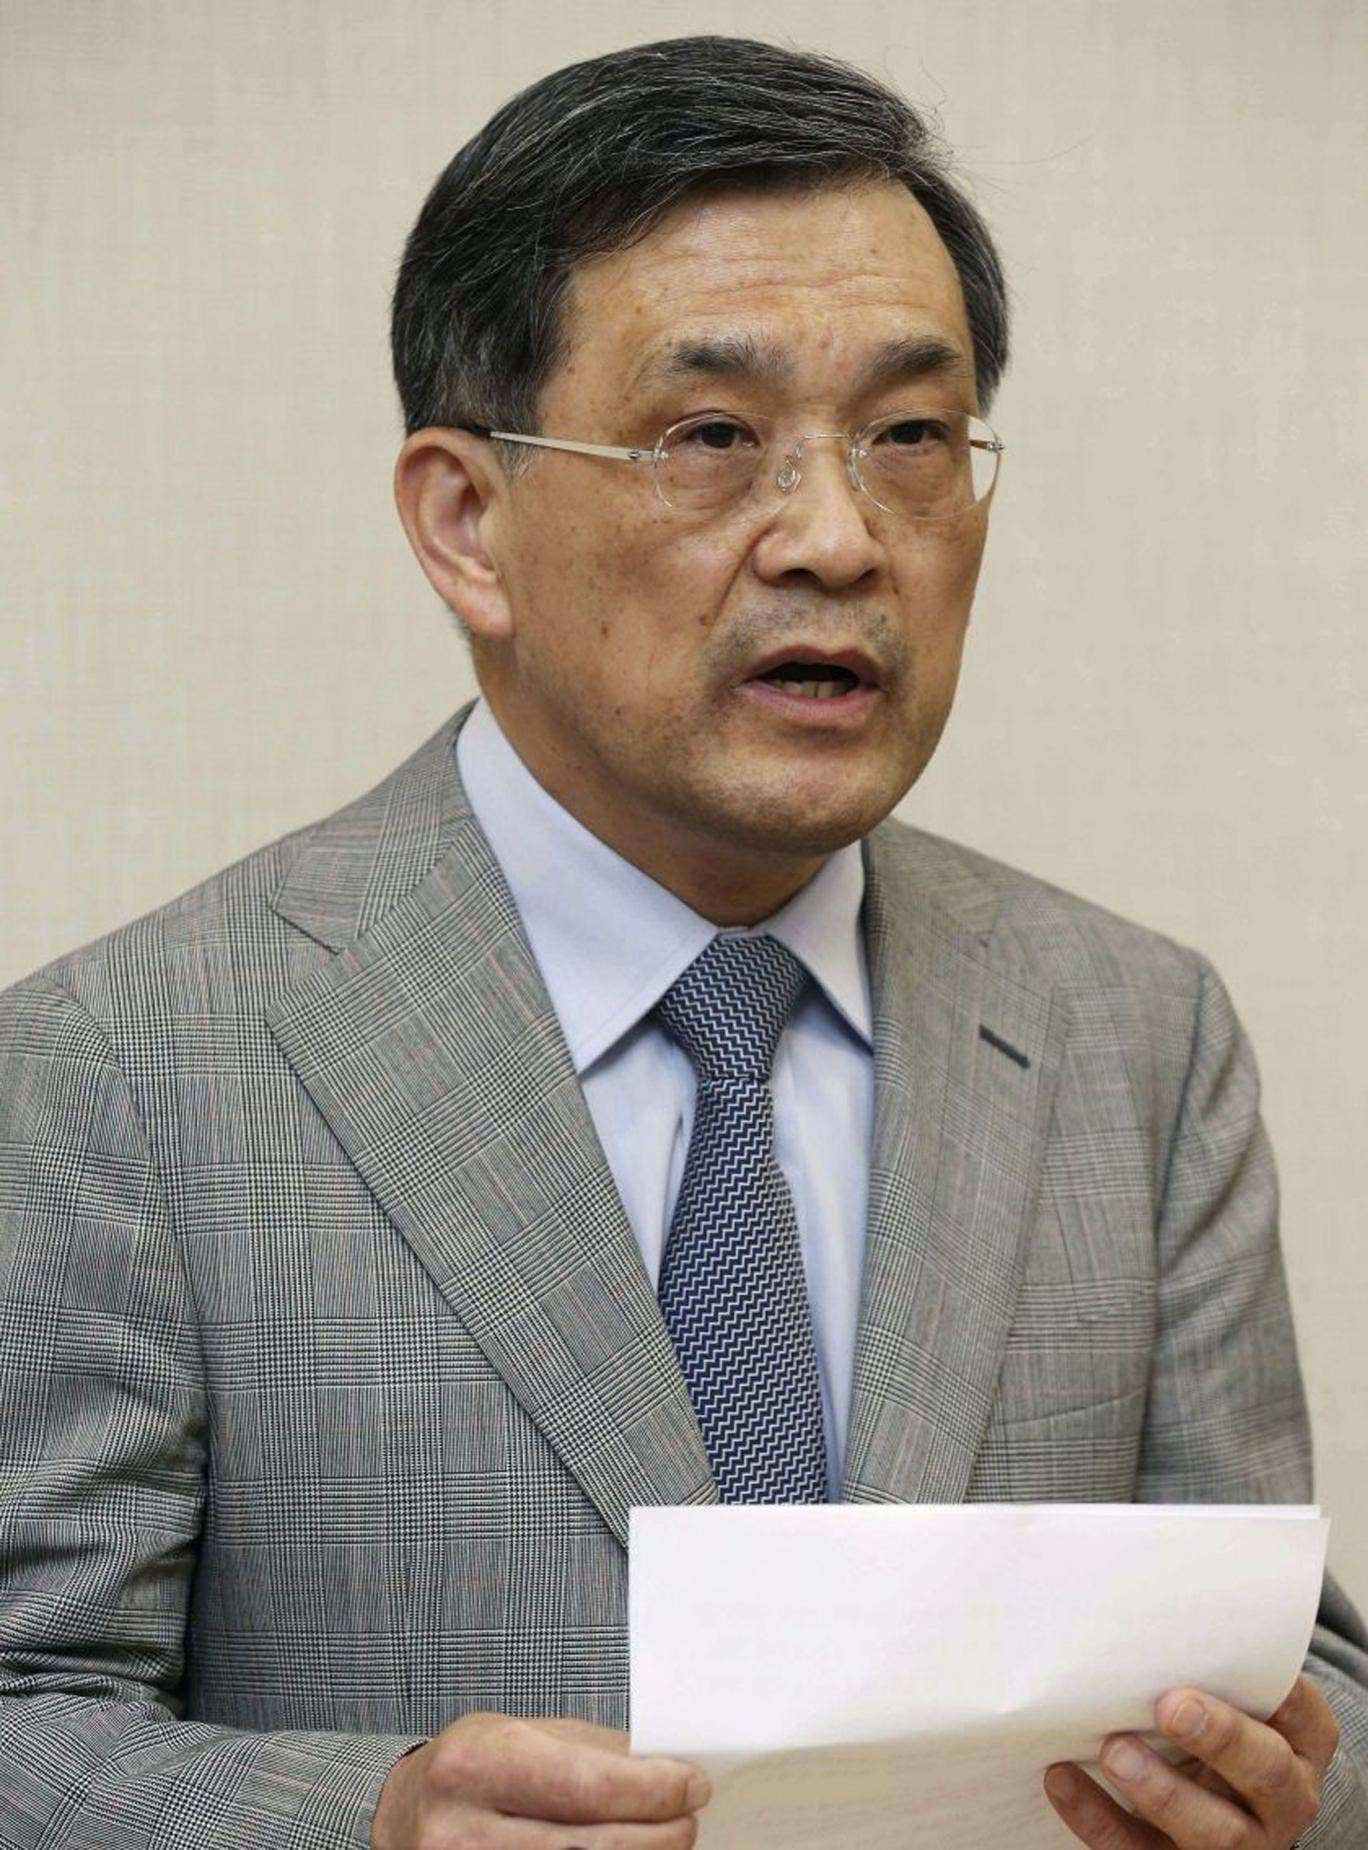 Samsung vice chairman Kwon Oh-hyun speaks during a briefing in Seoul, South Korea